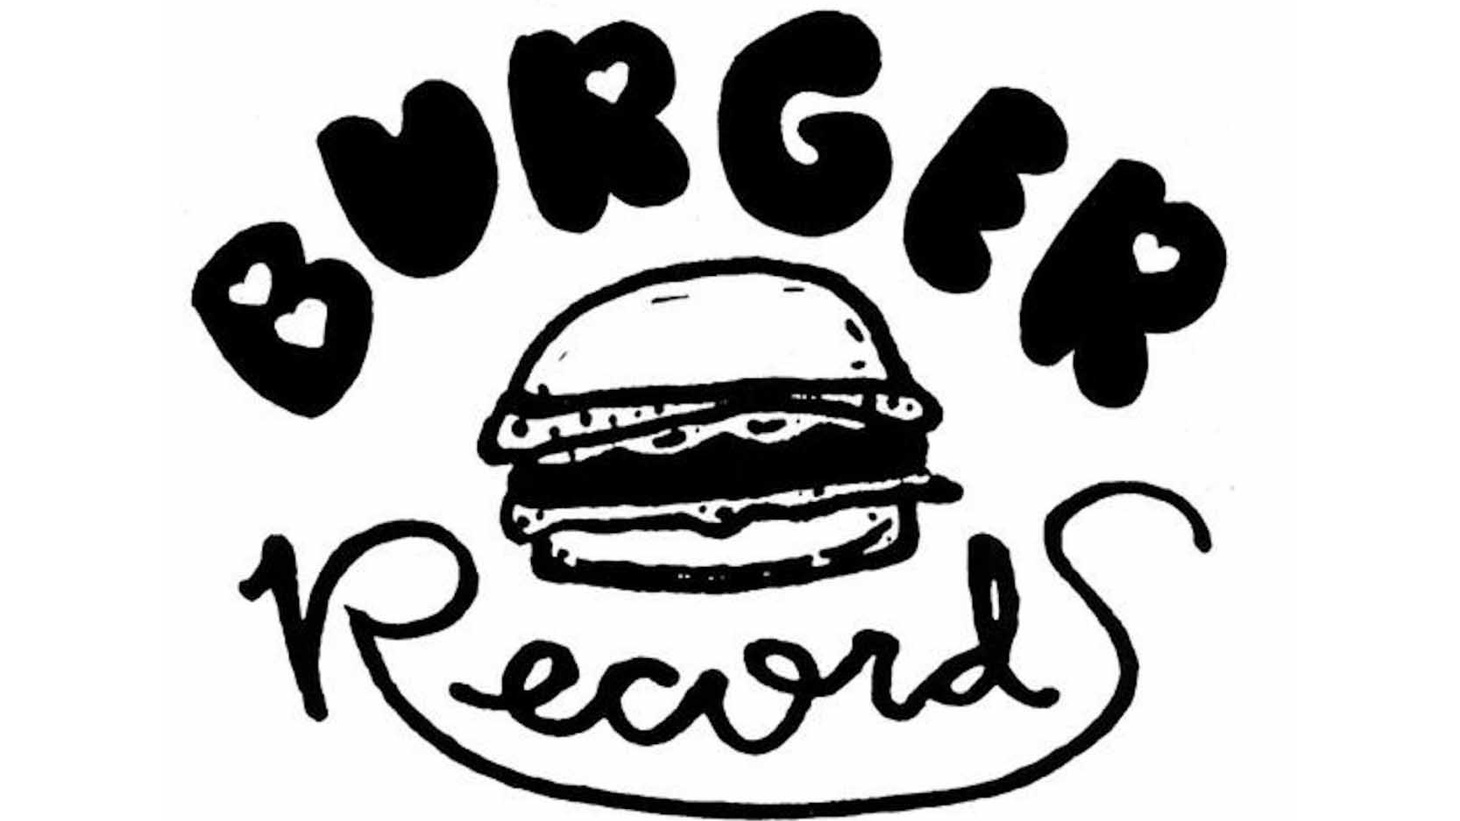 Orange County indie rock label Burger Records announced this July that it would permanently shut down. This comes after dozens of young women publicly accused bands associated with Burger Records — and one employee — of sexual misconduct and abuse.